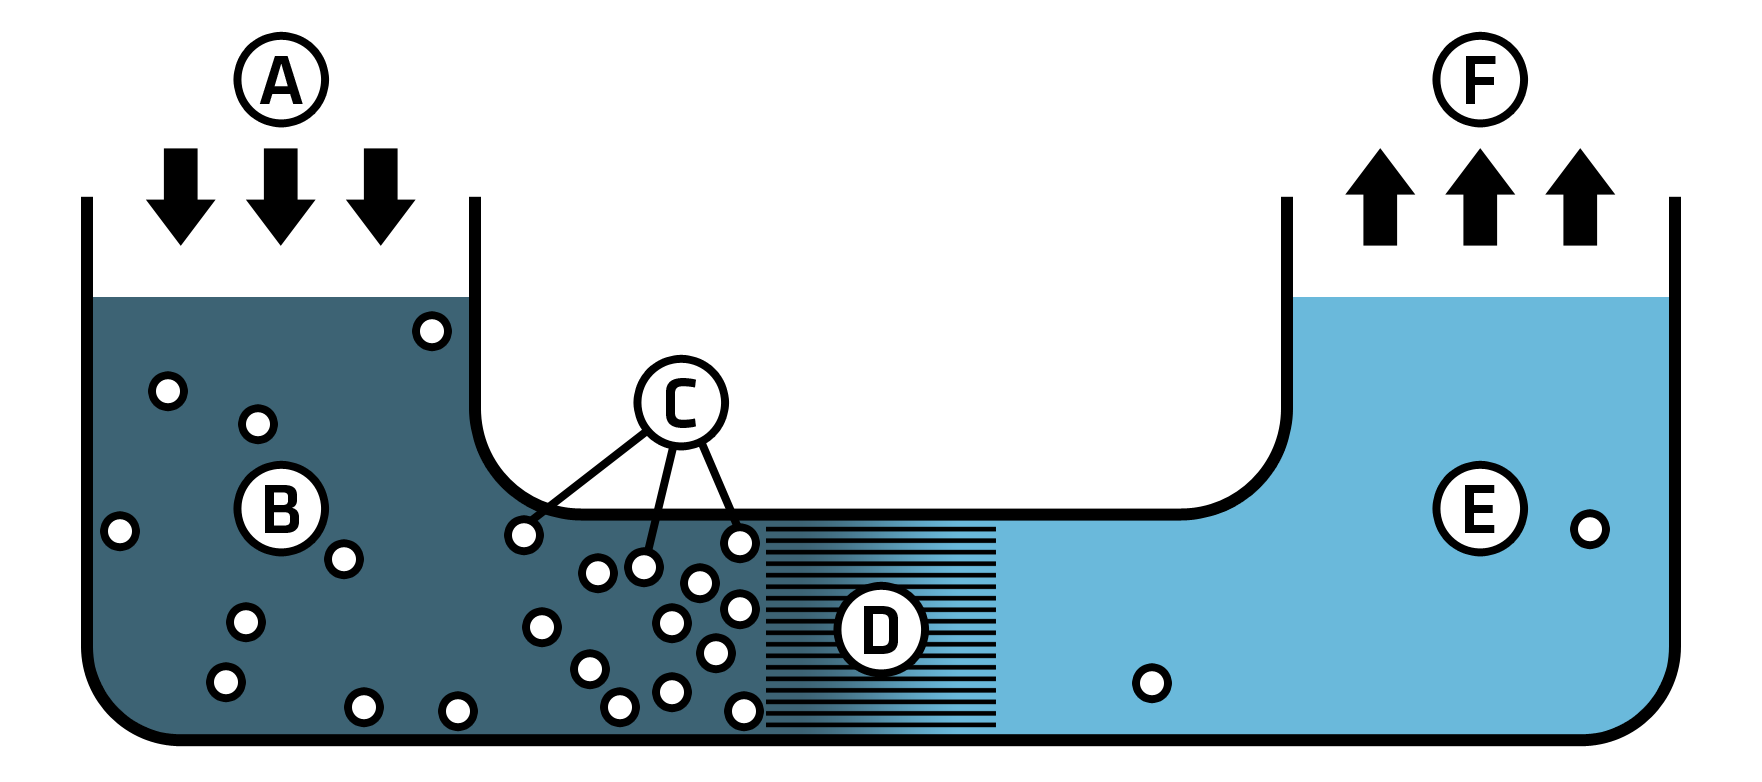 A schematic showing reverse osmosis